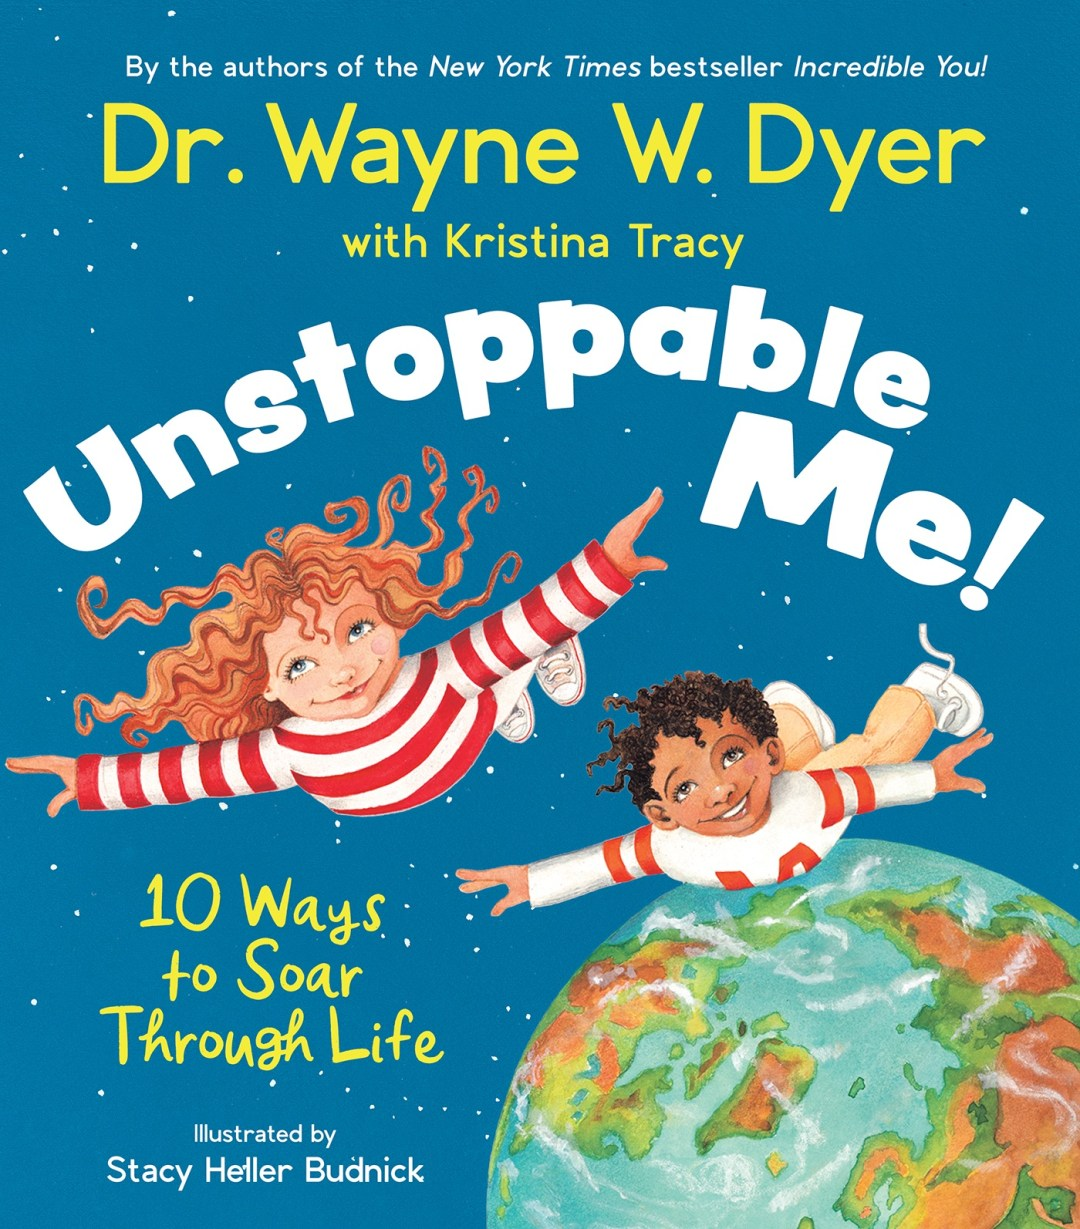 Book Cover Image for Unstoppable Me!